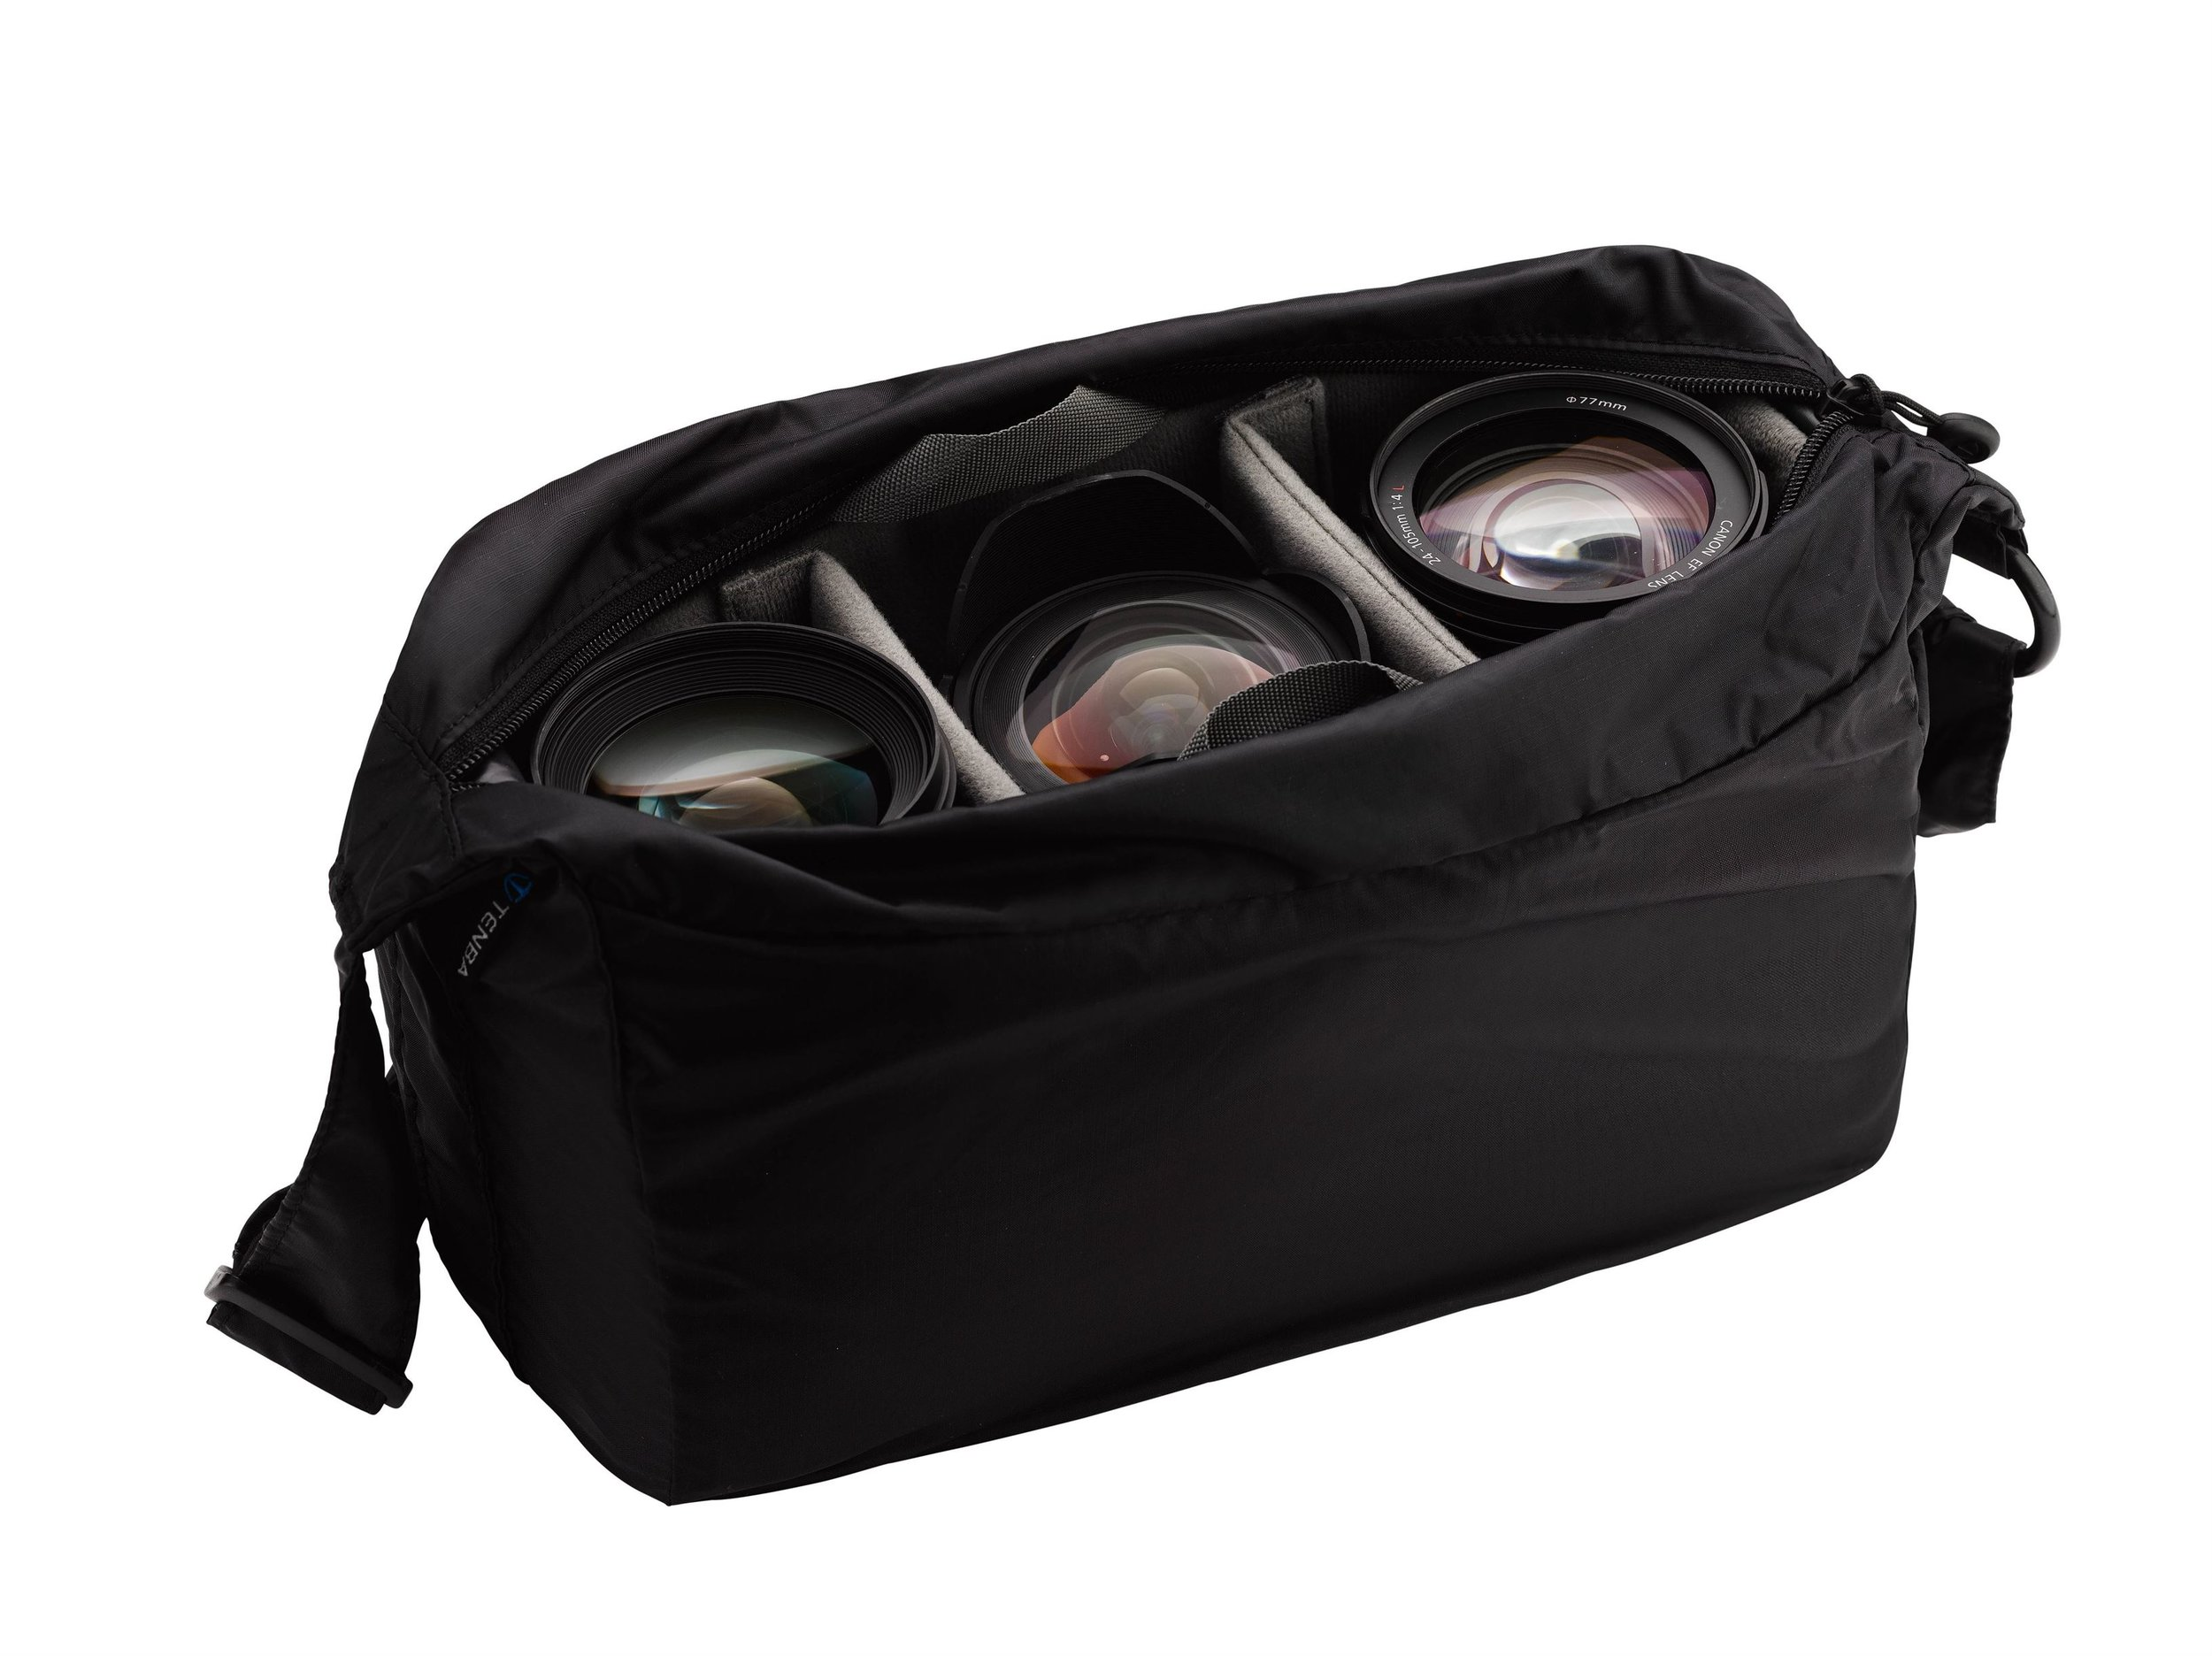 REMOVABLE PADDED CAMERA INSERT - Allows a camera and 2-3 lenses to be carried independently inside any bag of your choosing. Insert can be paired with Tenba's Packlite 10 travel bag (636-228) to create a portable camera bag solution.